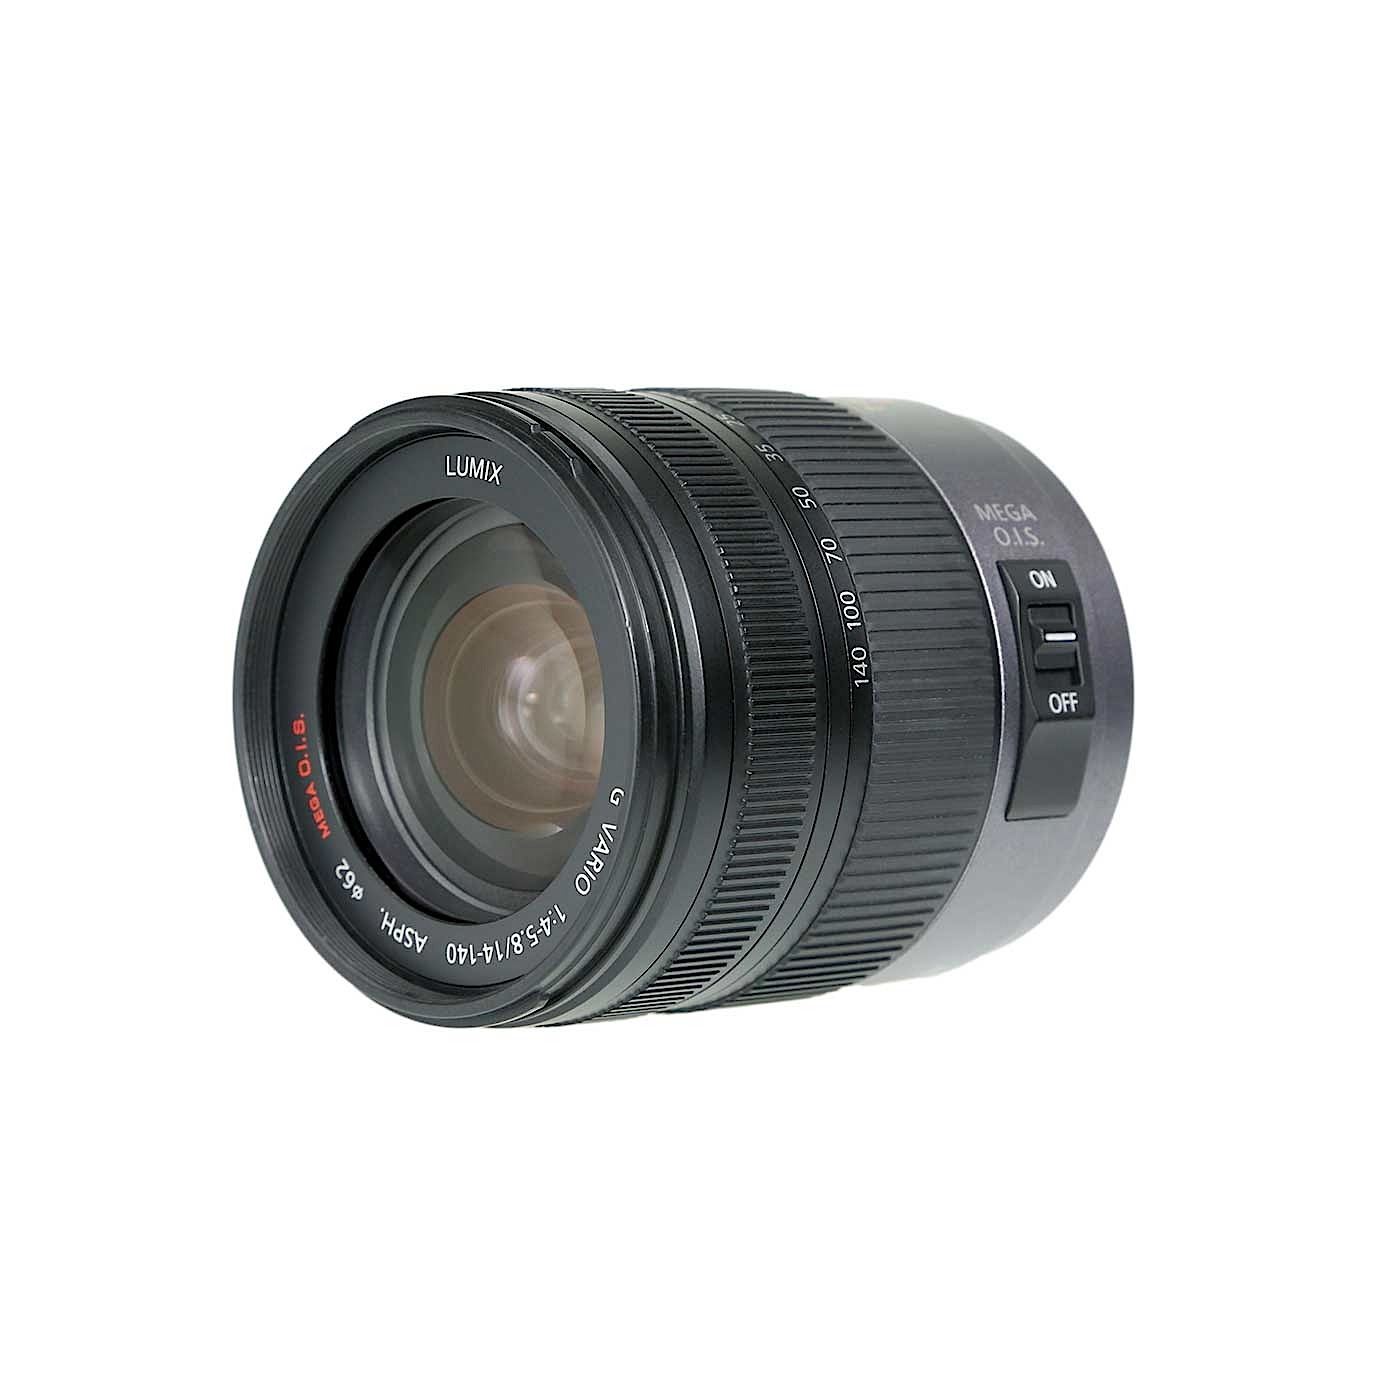 Panasonic 14-140mm Lumix Zoom Lens